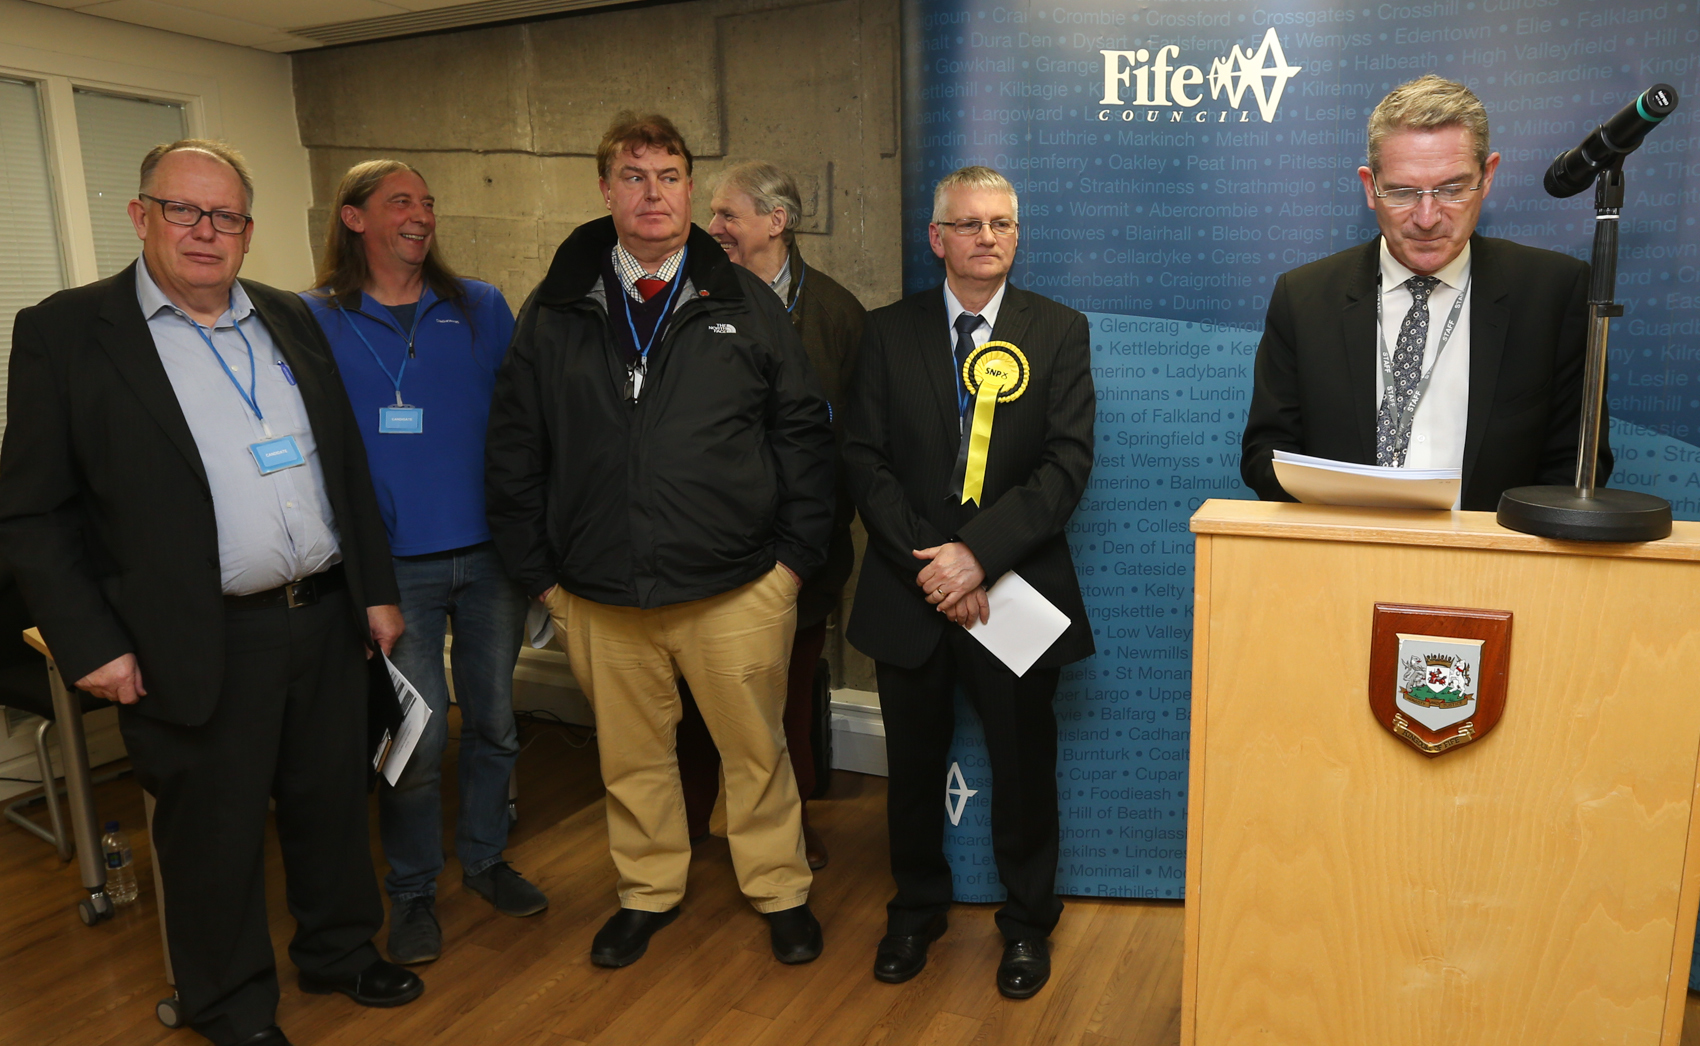 Returning officer Steve Grimmond (right) announces Alistair Suttie (second right) the winner